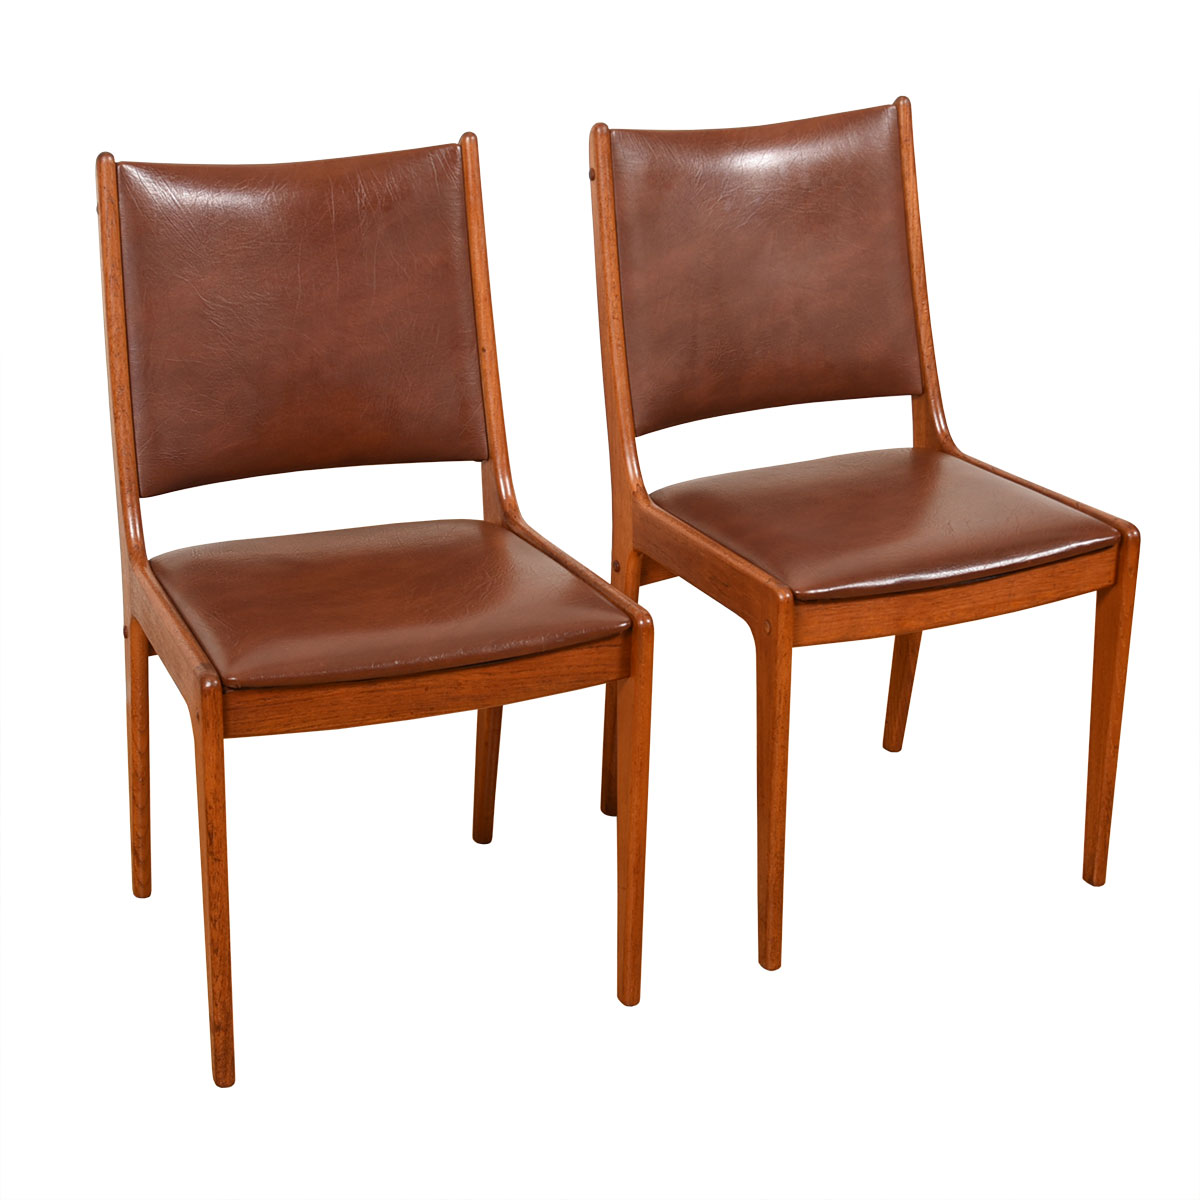 Pair of Light Brown Johannes Andersen Danish Dining Chairs for Uldum Mobelfabrik